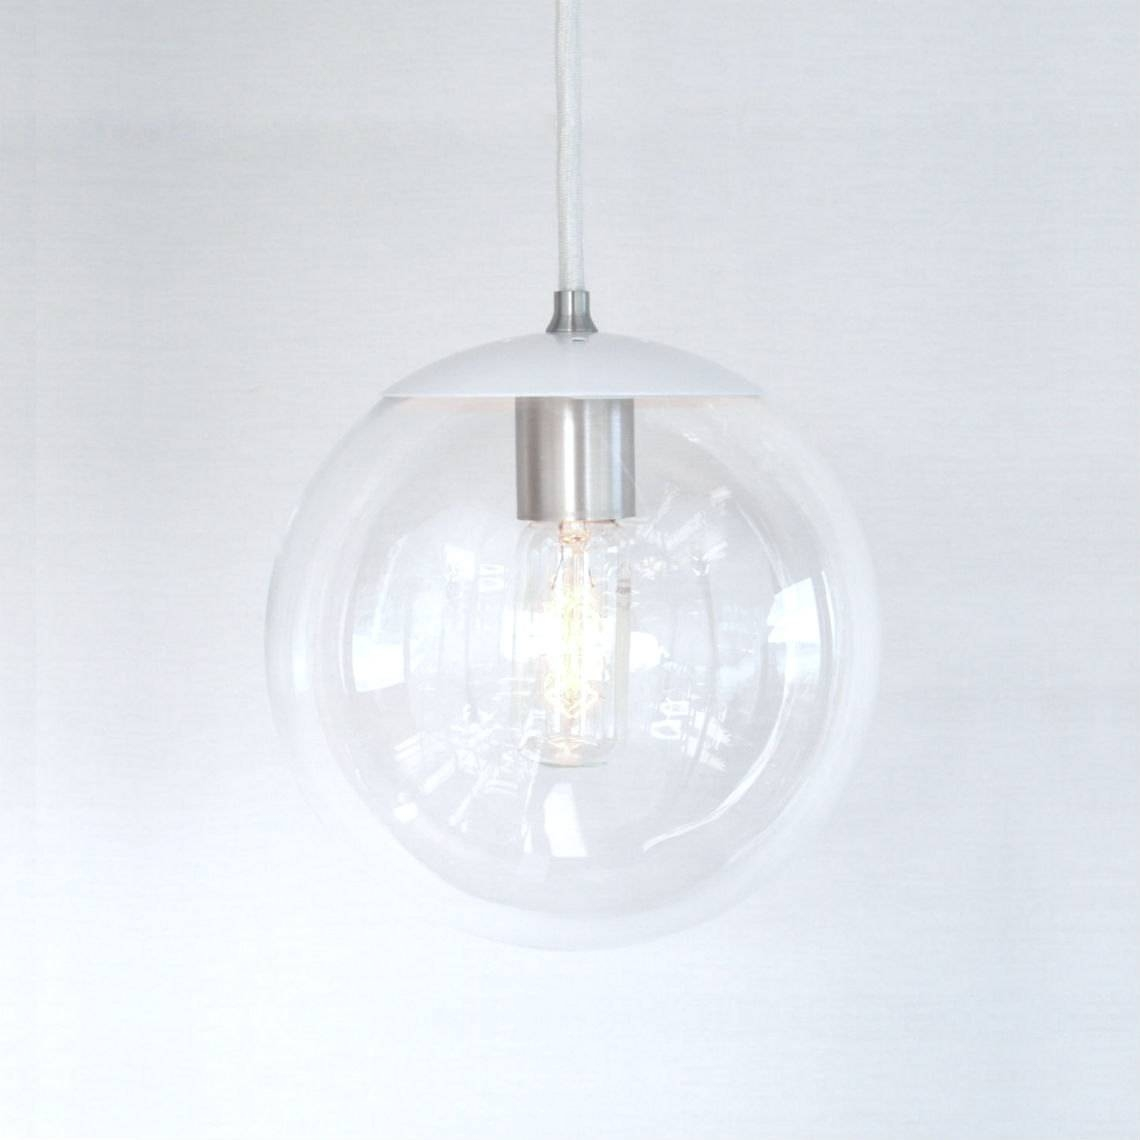 Impressive On Clear Globe Pendant Light For Home Decor Pictures throughout Clear Globe Pendant Lights (Image 8 of 15)